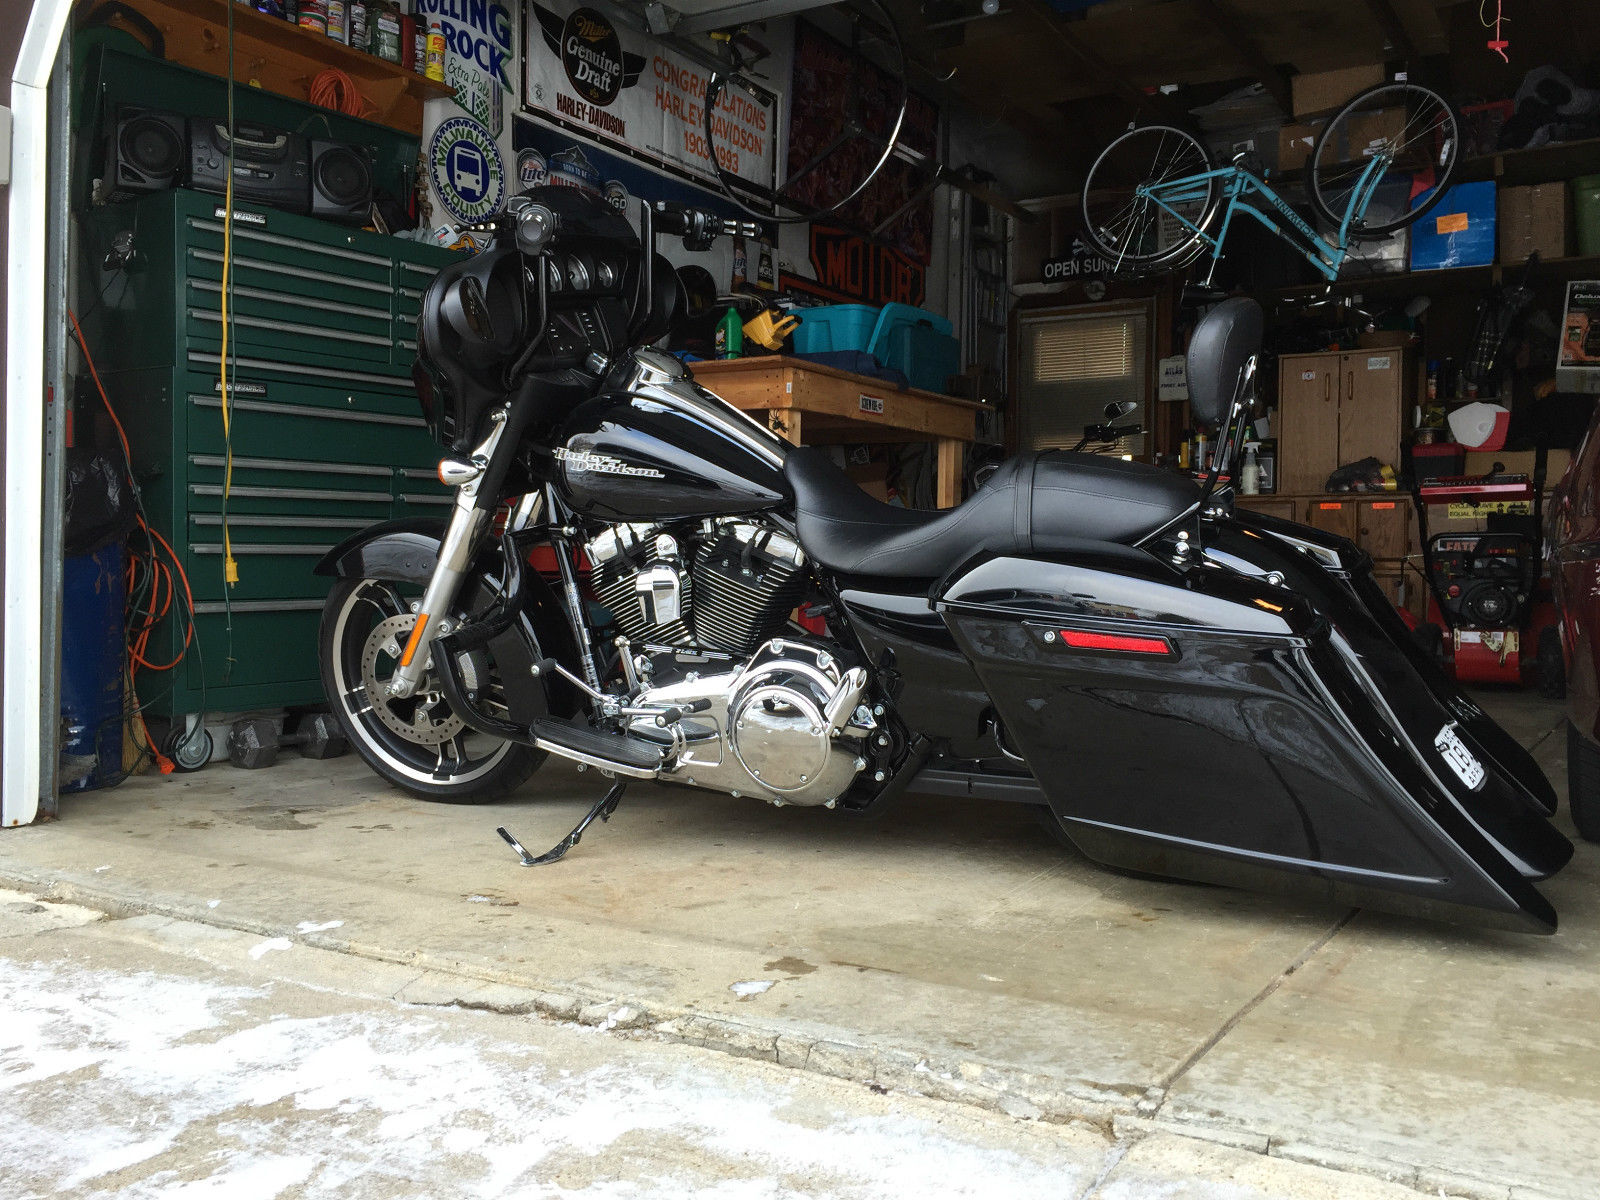 2013 harley road glide wiring diagram 5 2013 Road Glide Accessories Off-Road Light Wiring Diagram Harley Road Glide Black Exhaust with Black